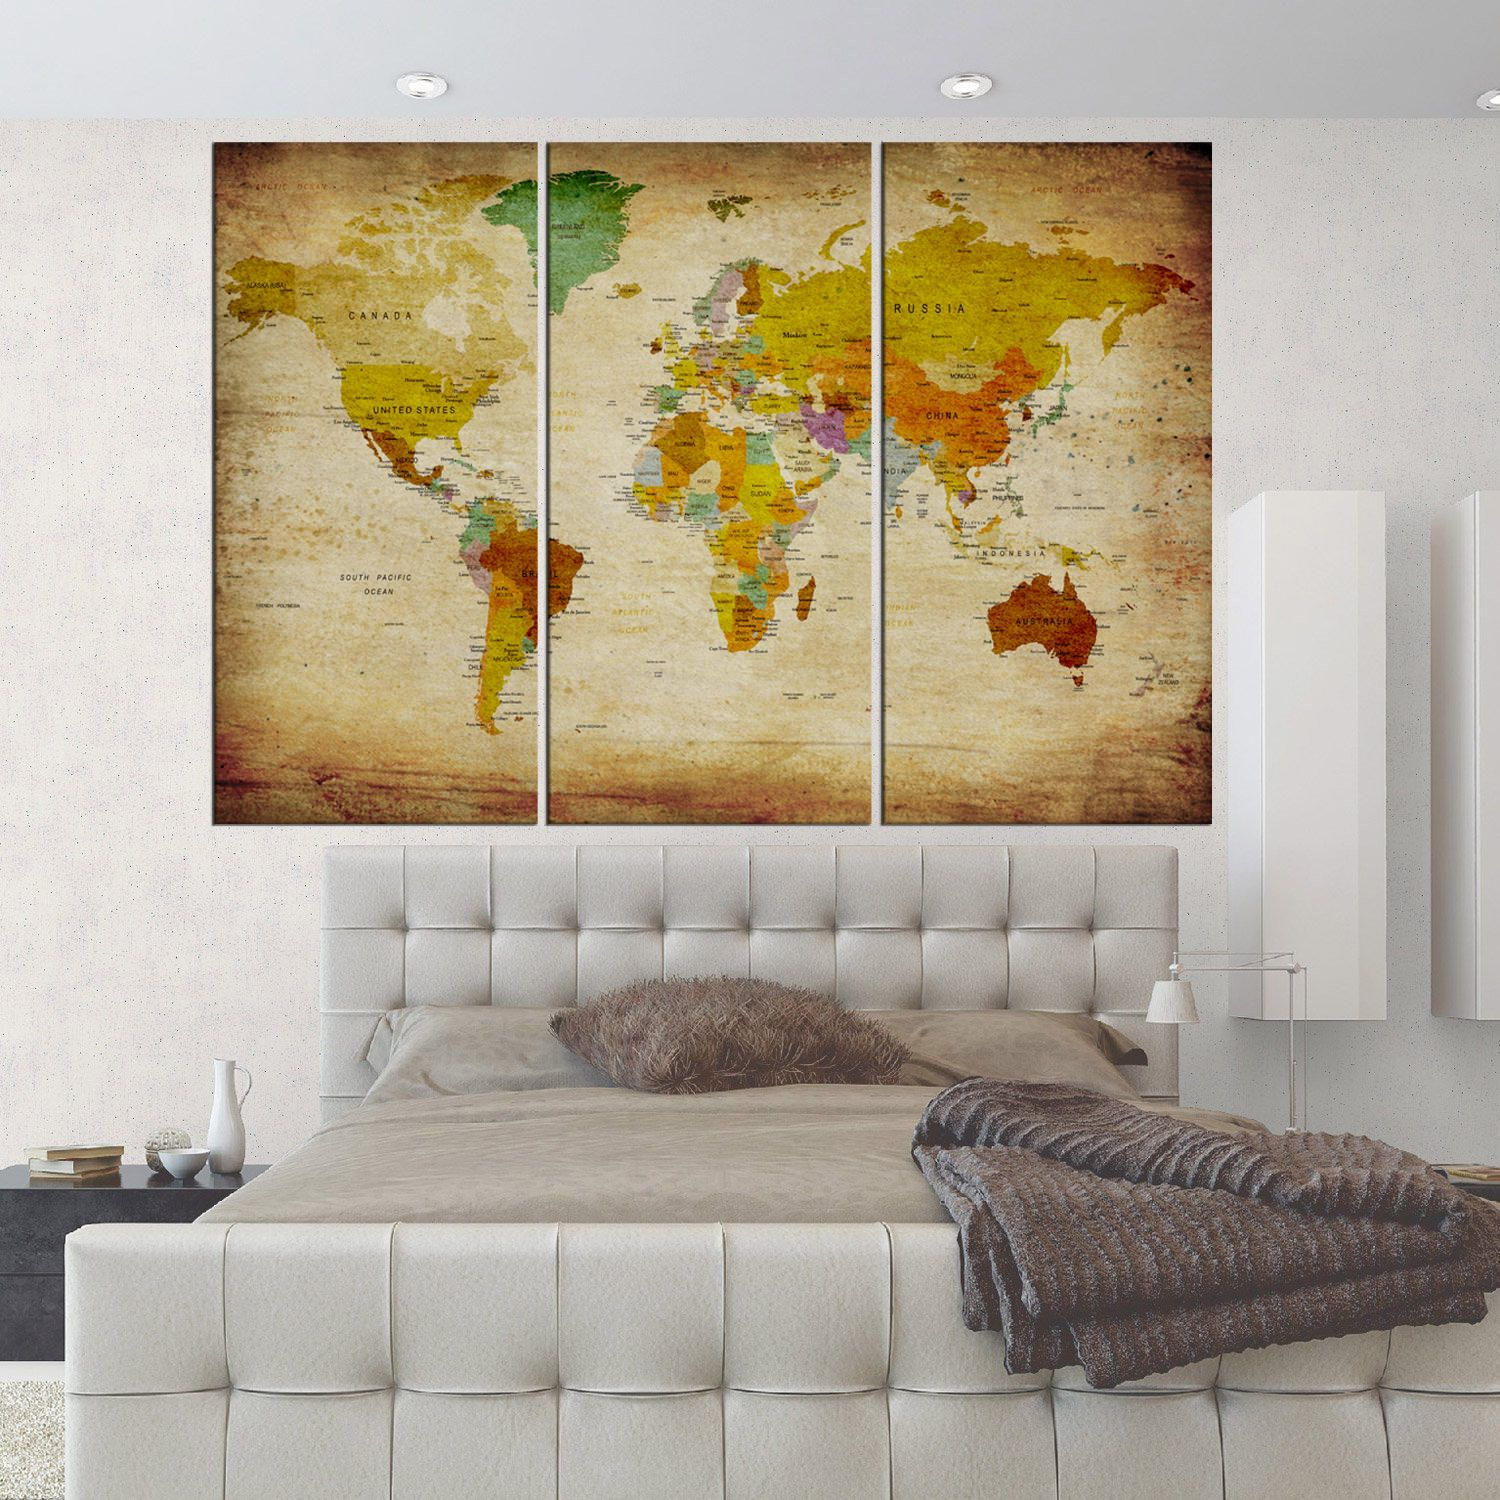 Large push pin world atlas map wall art canvas print set of 3 pieces ...